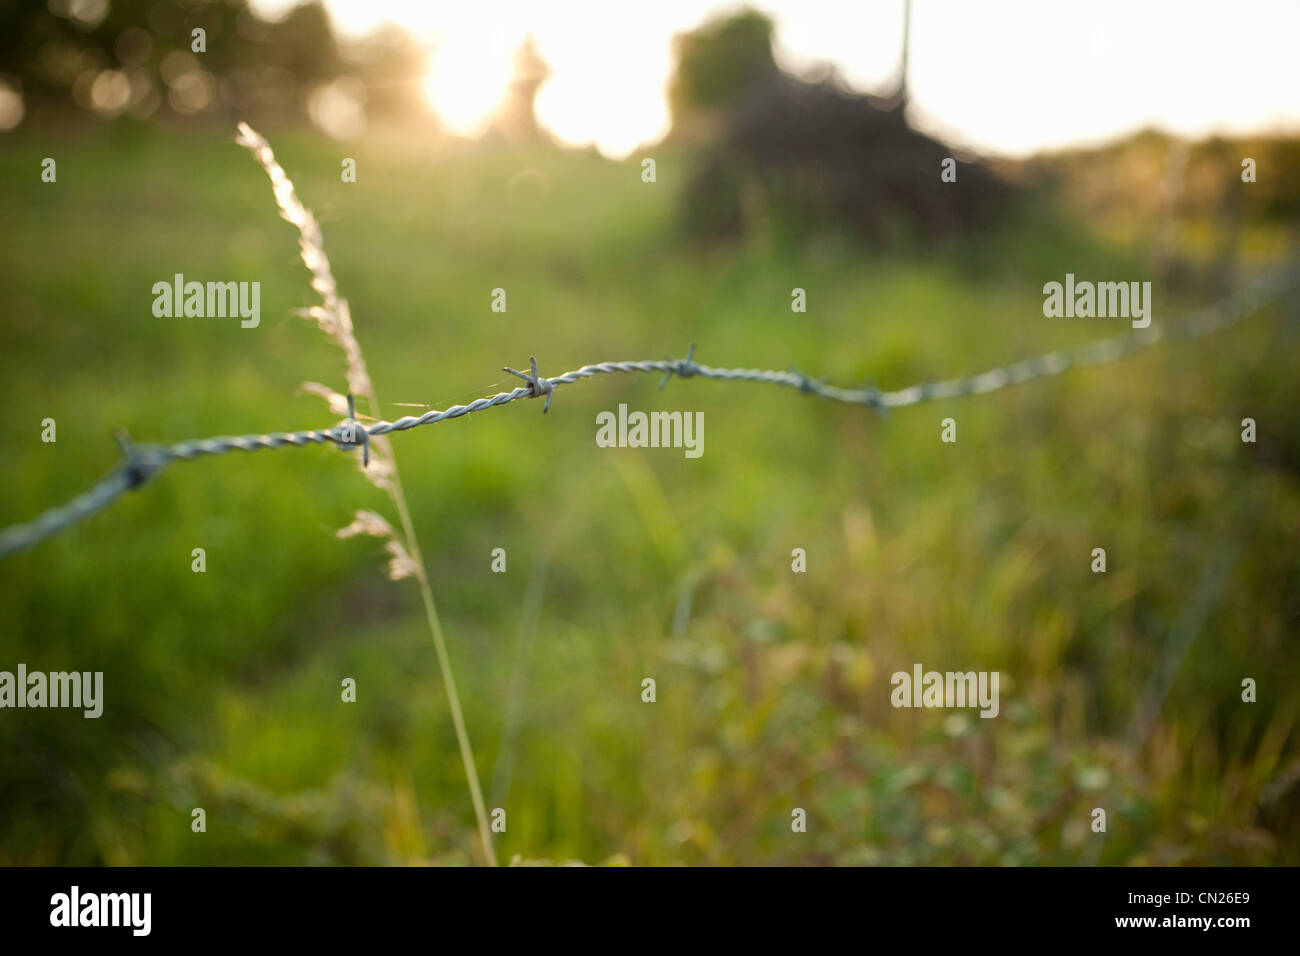 Barbed wire fence in field - Stock Image